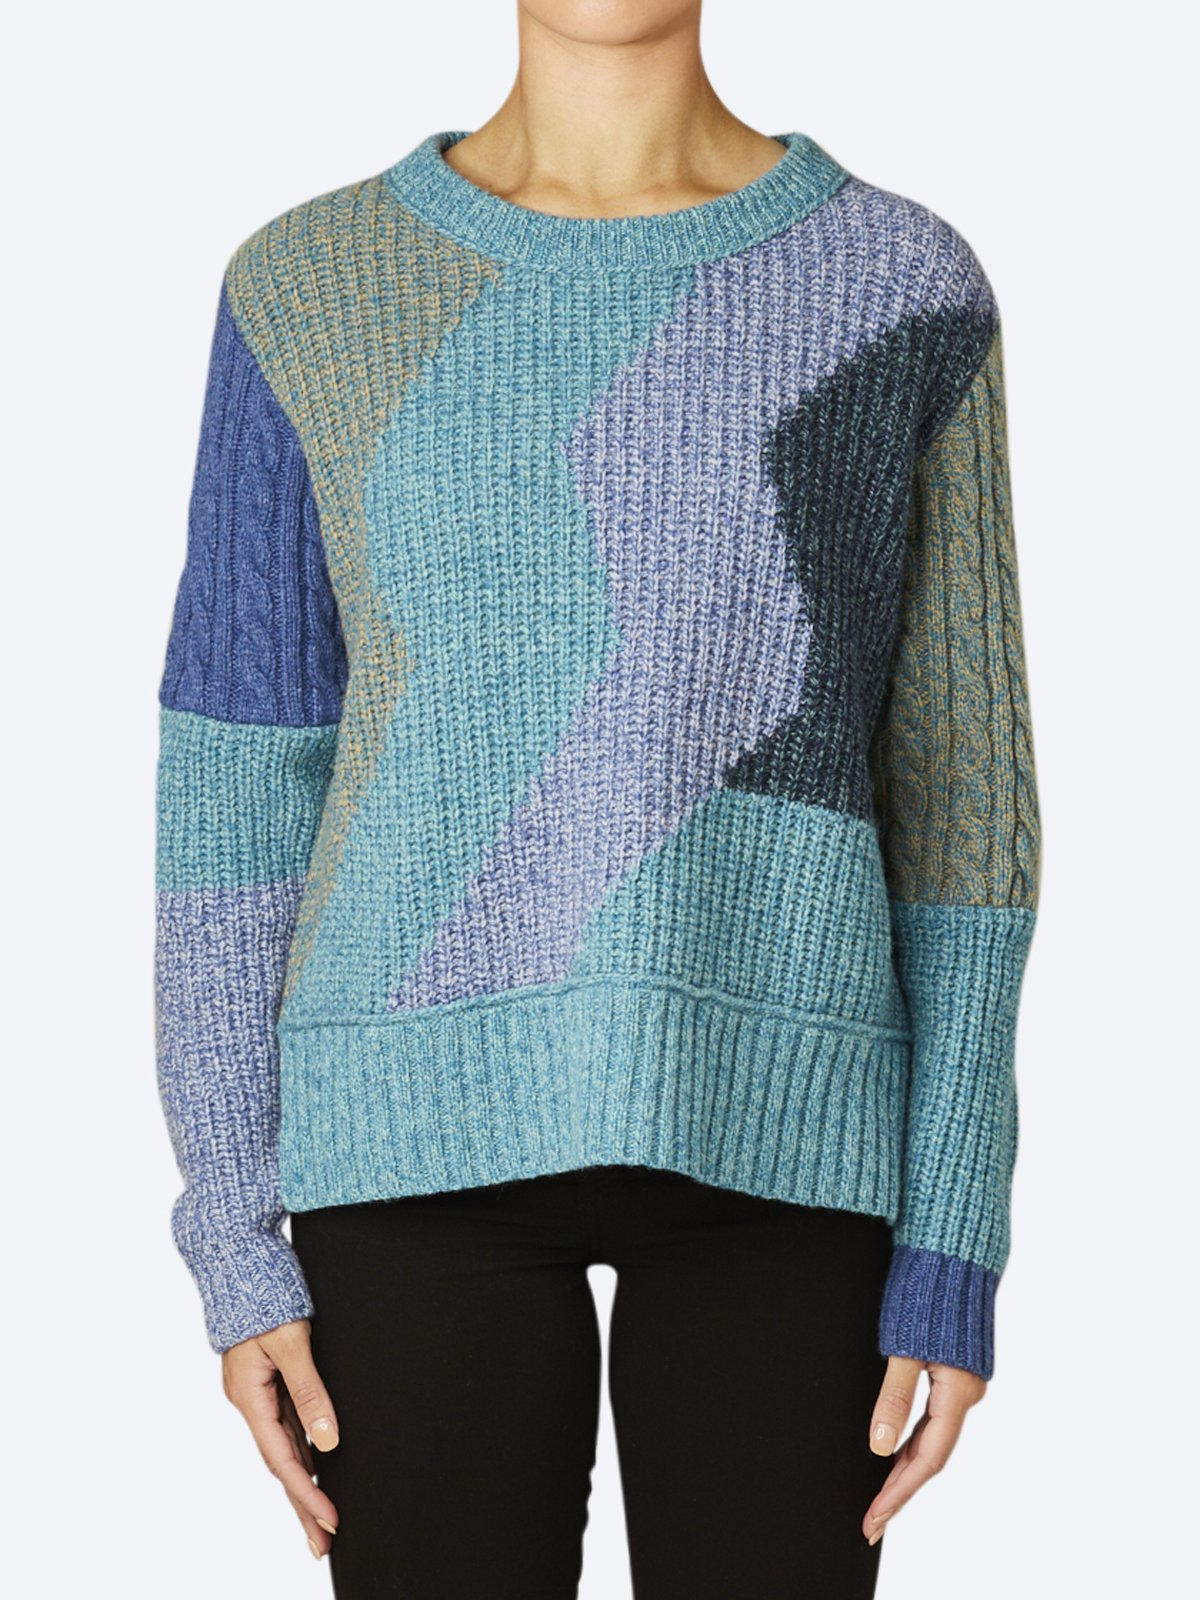 Yeltuor - ZAKET AND PLOVER - Knitwear - ZAKET & PLOVER CHUNKY COLOUR BLOCK KNIT -  -